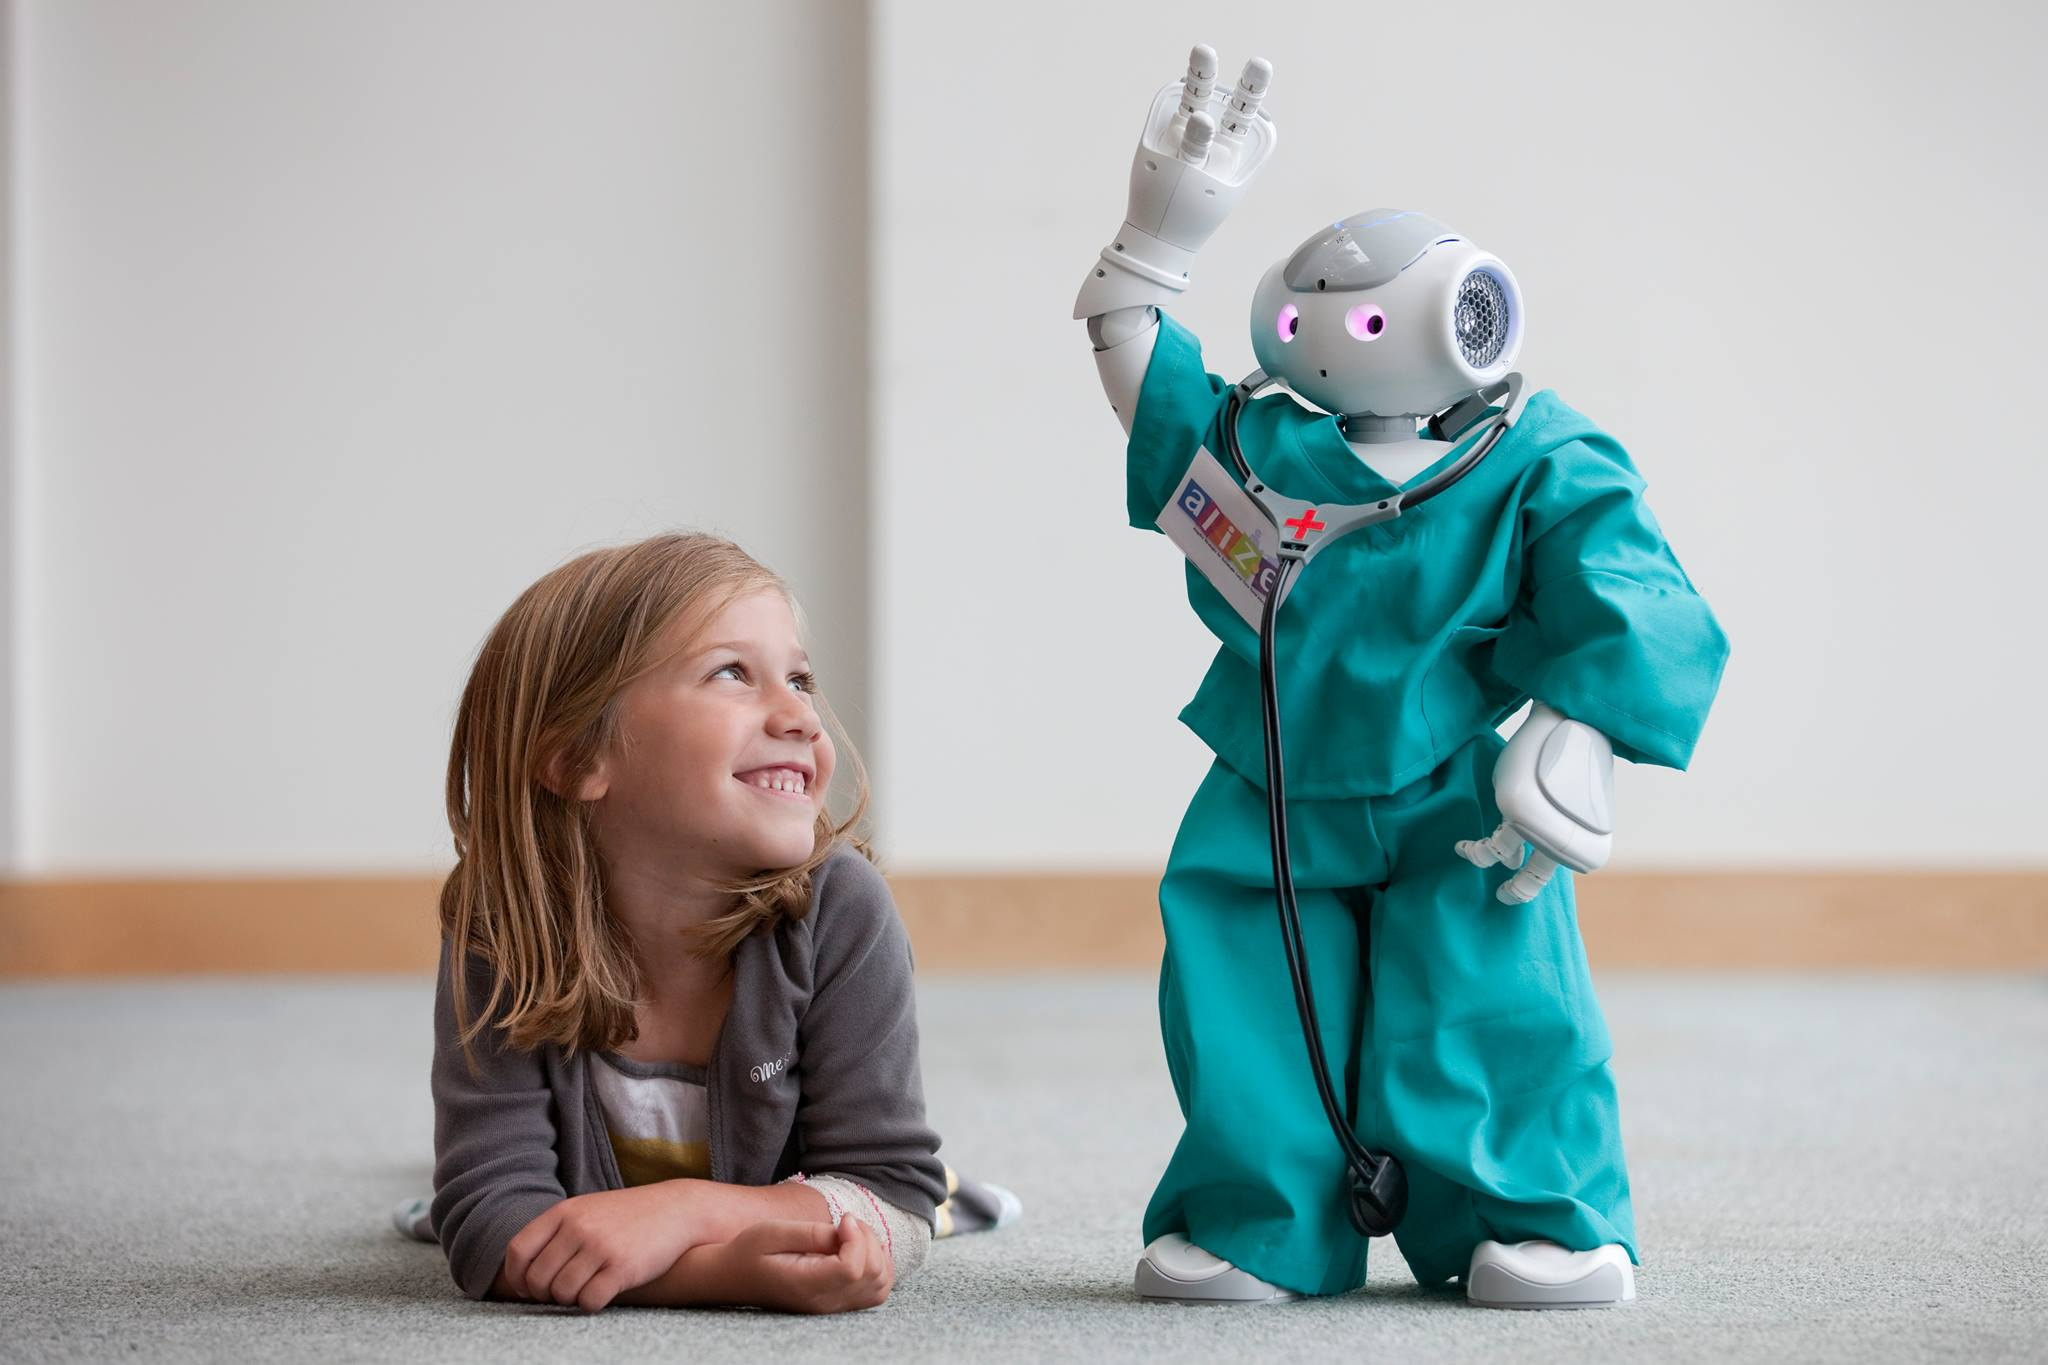 HUMANOID ROBOTS FOR PEDIATRIC CARE Photo